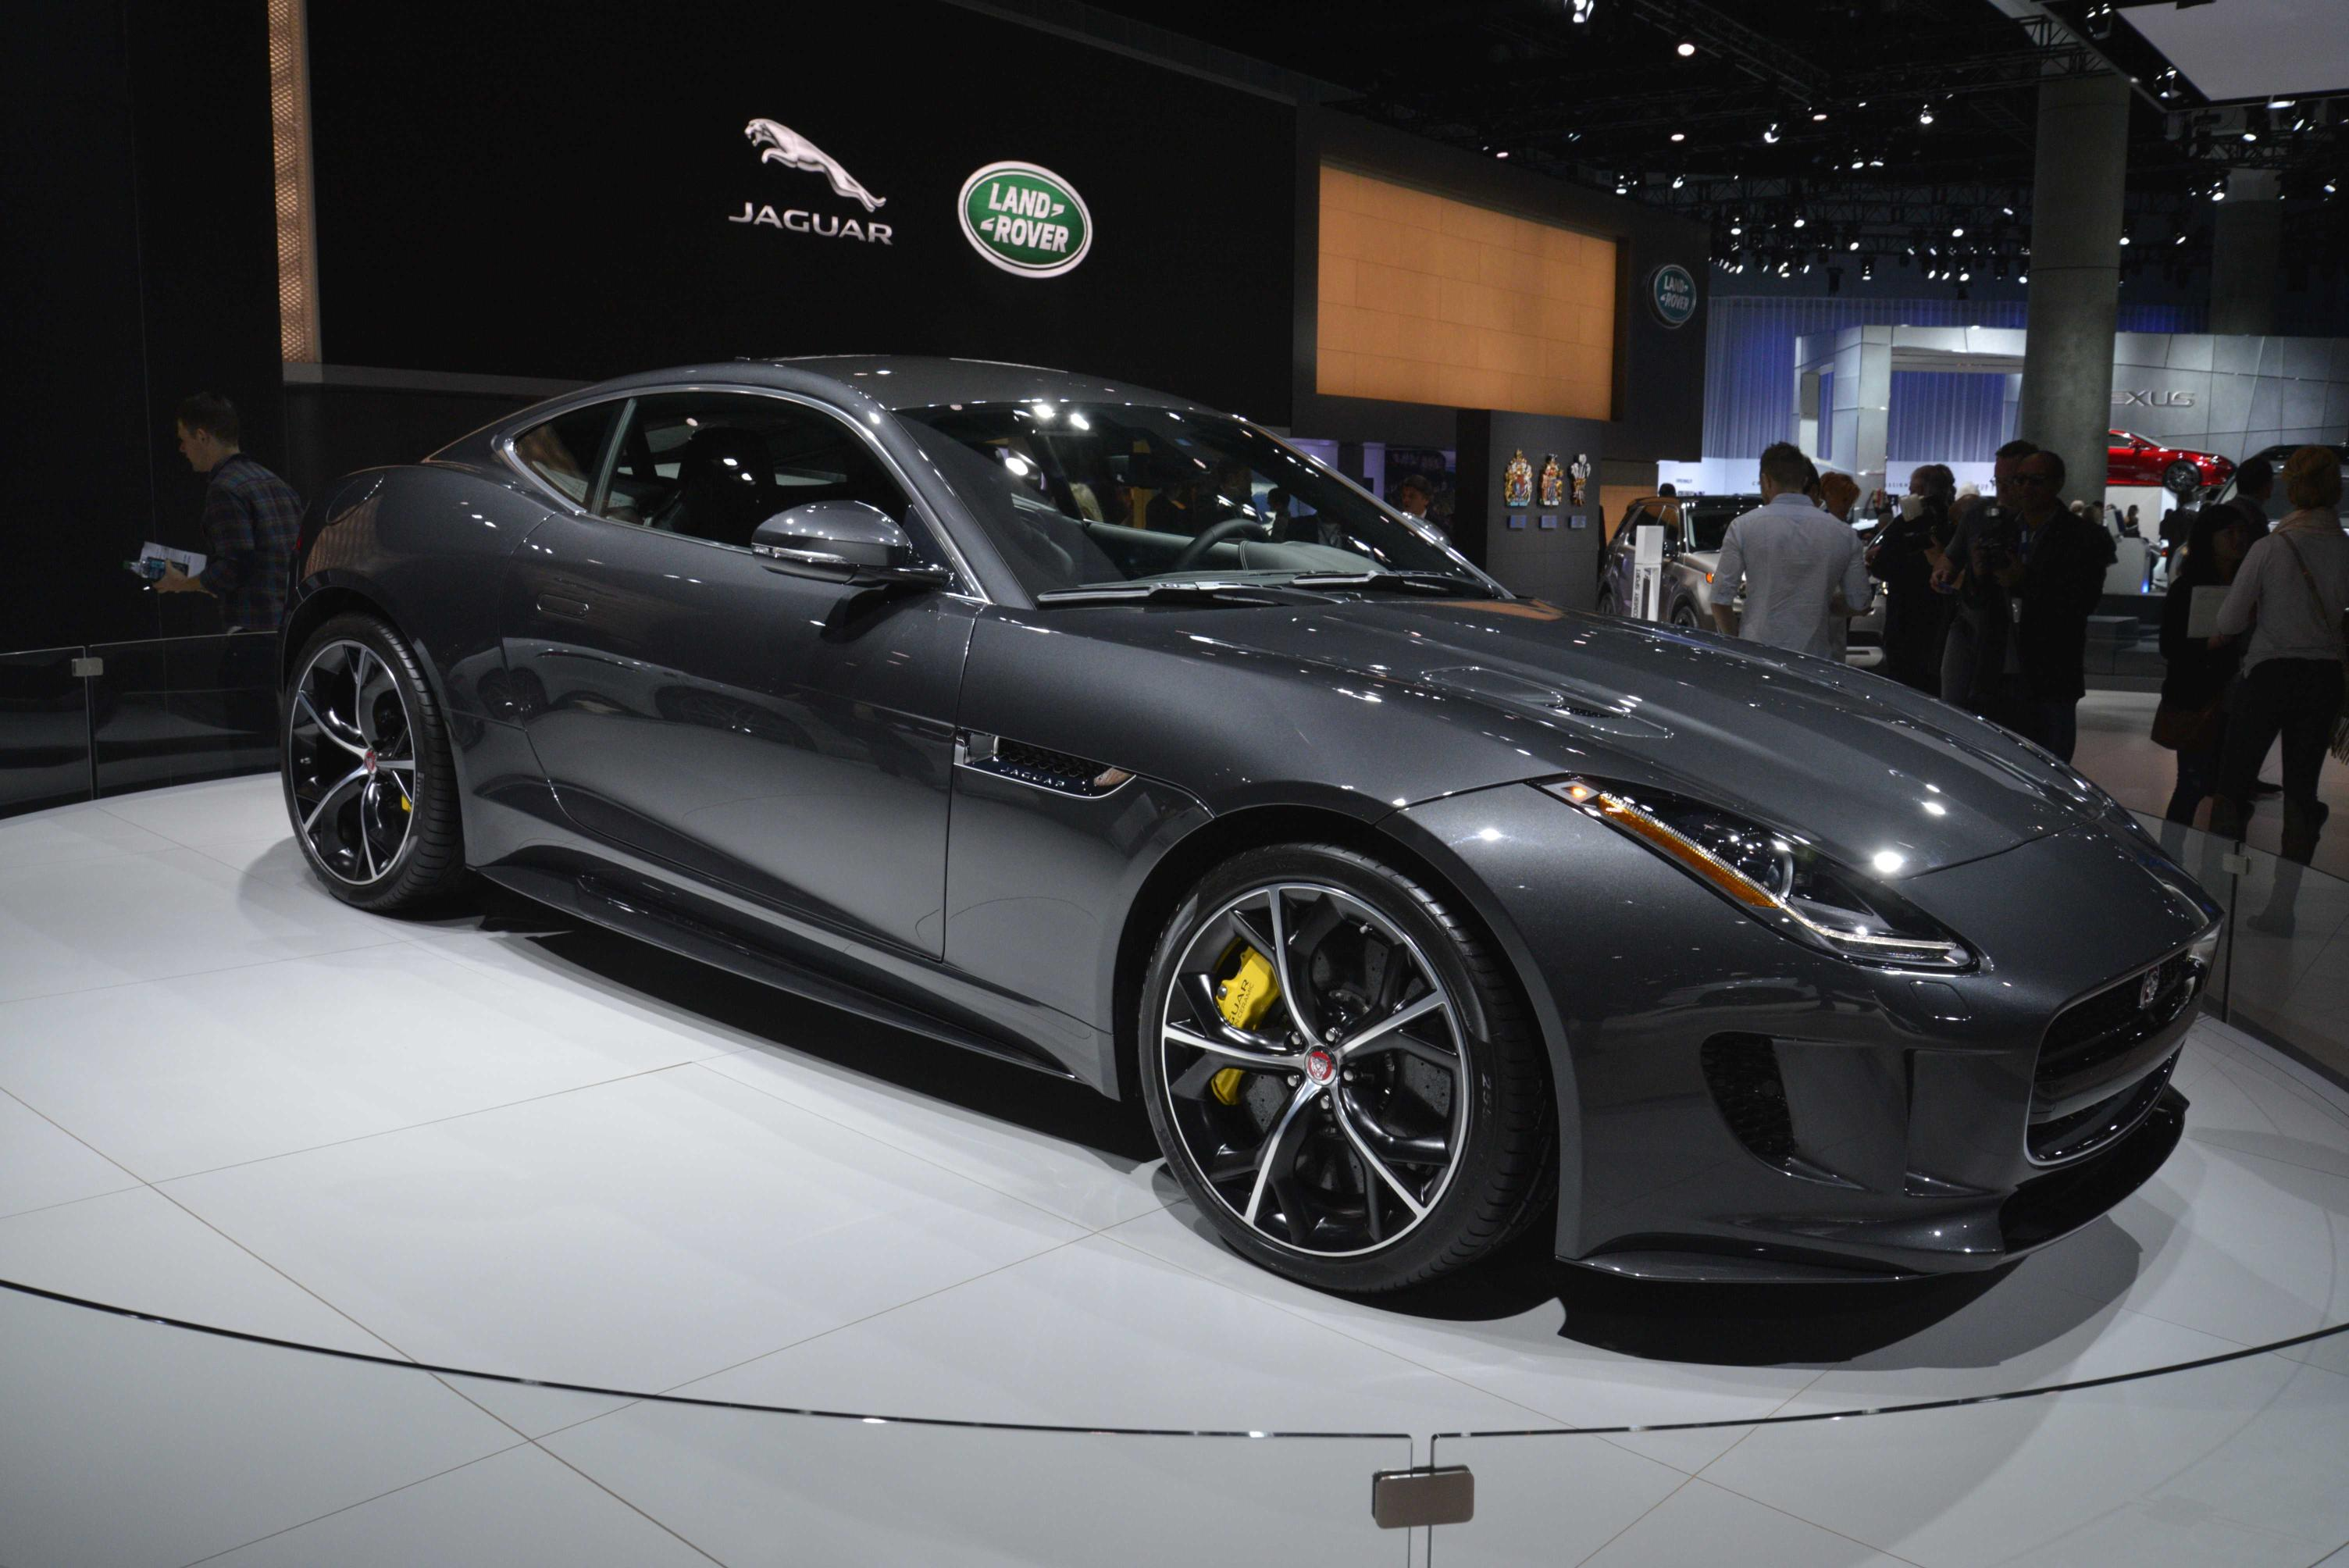 2016 Jaguar F-TYPE #7